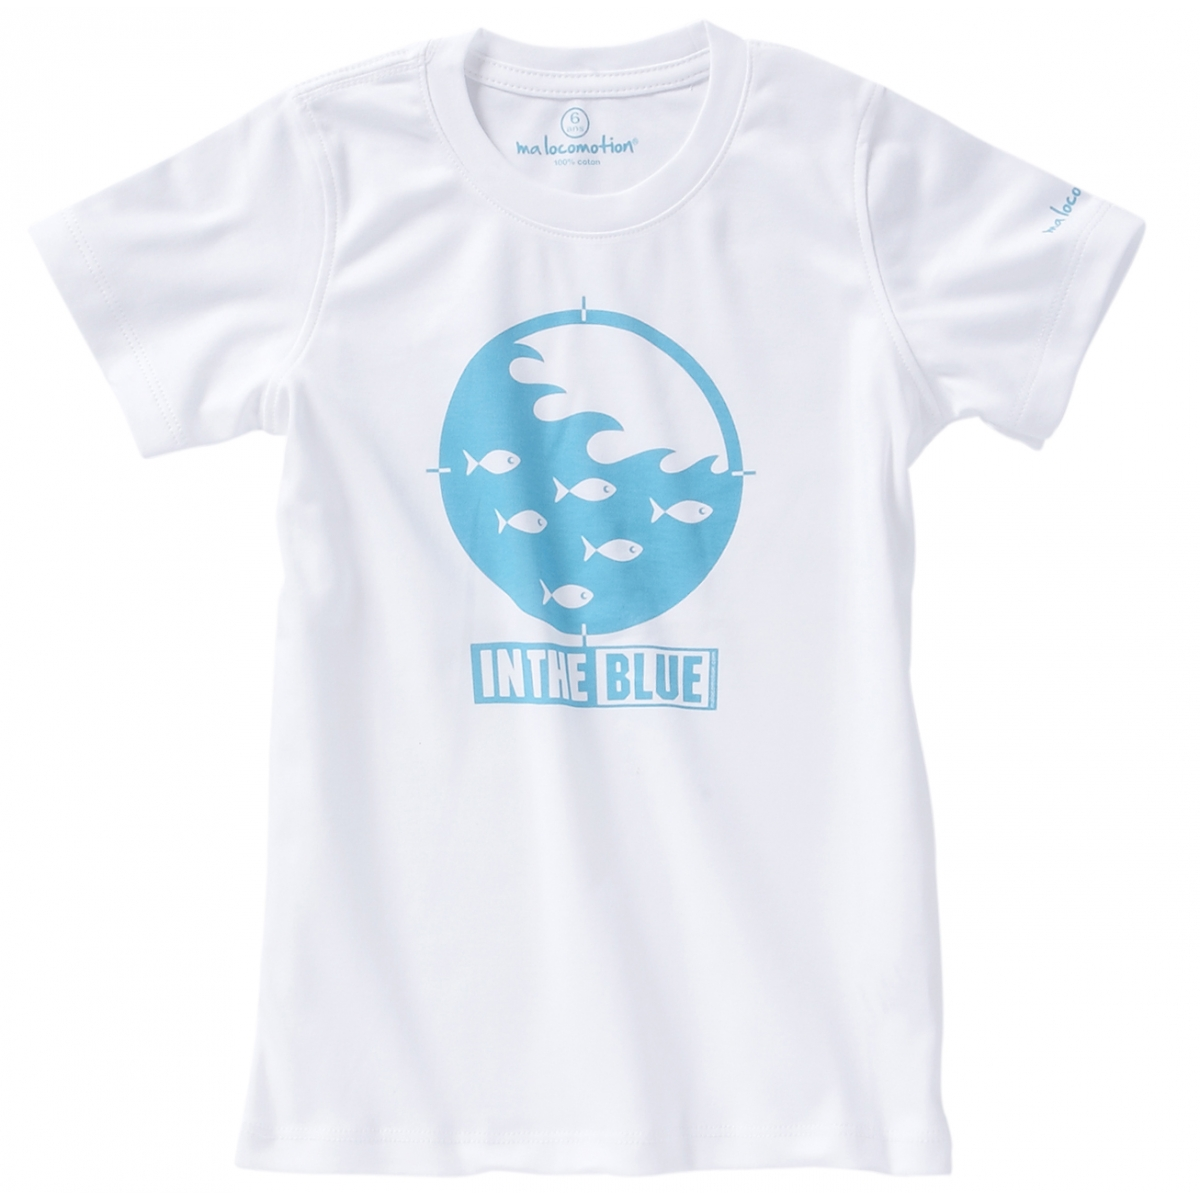 T-shirt in the blue